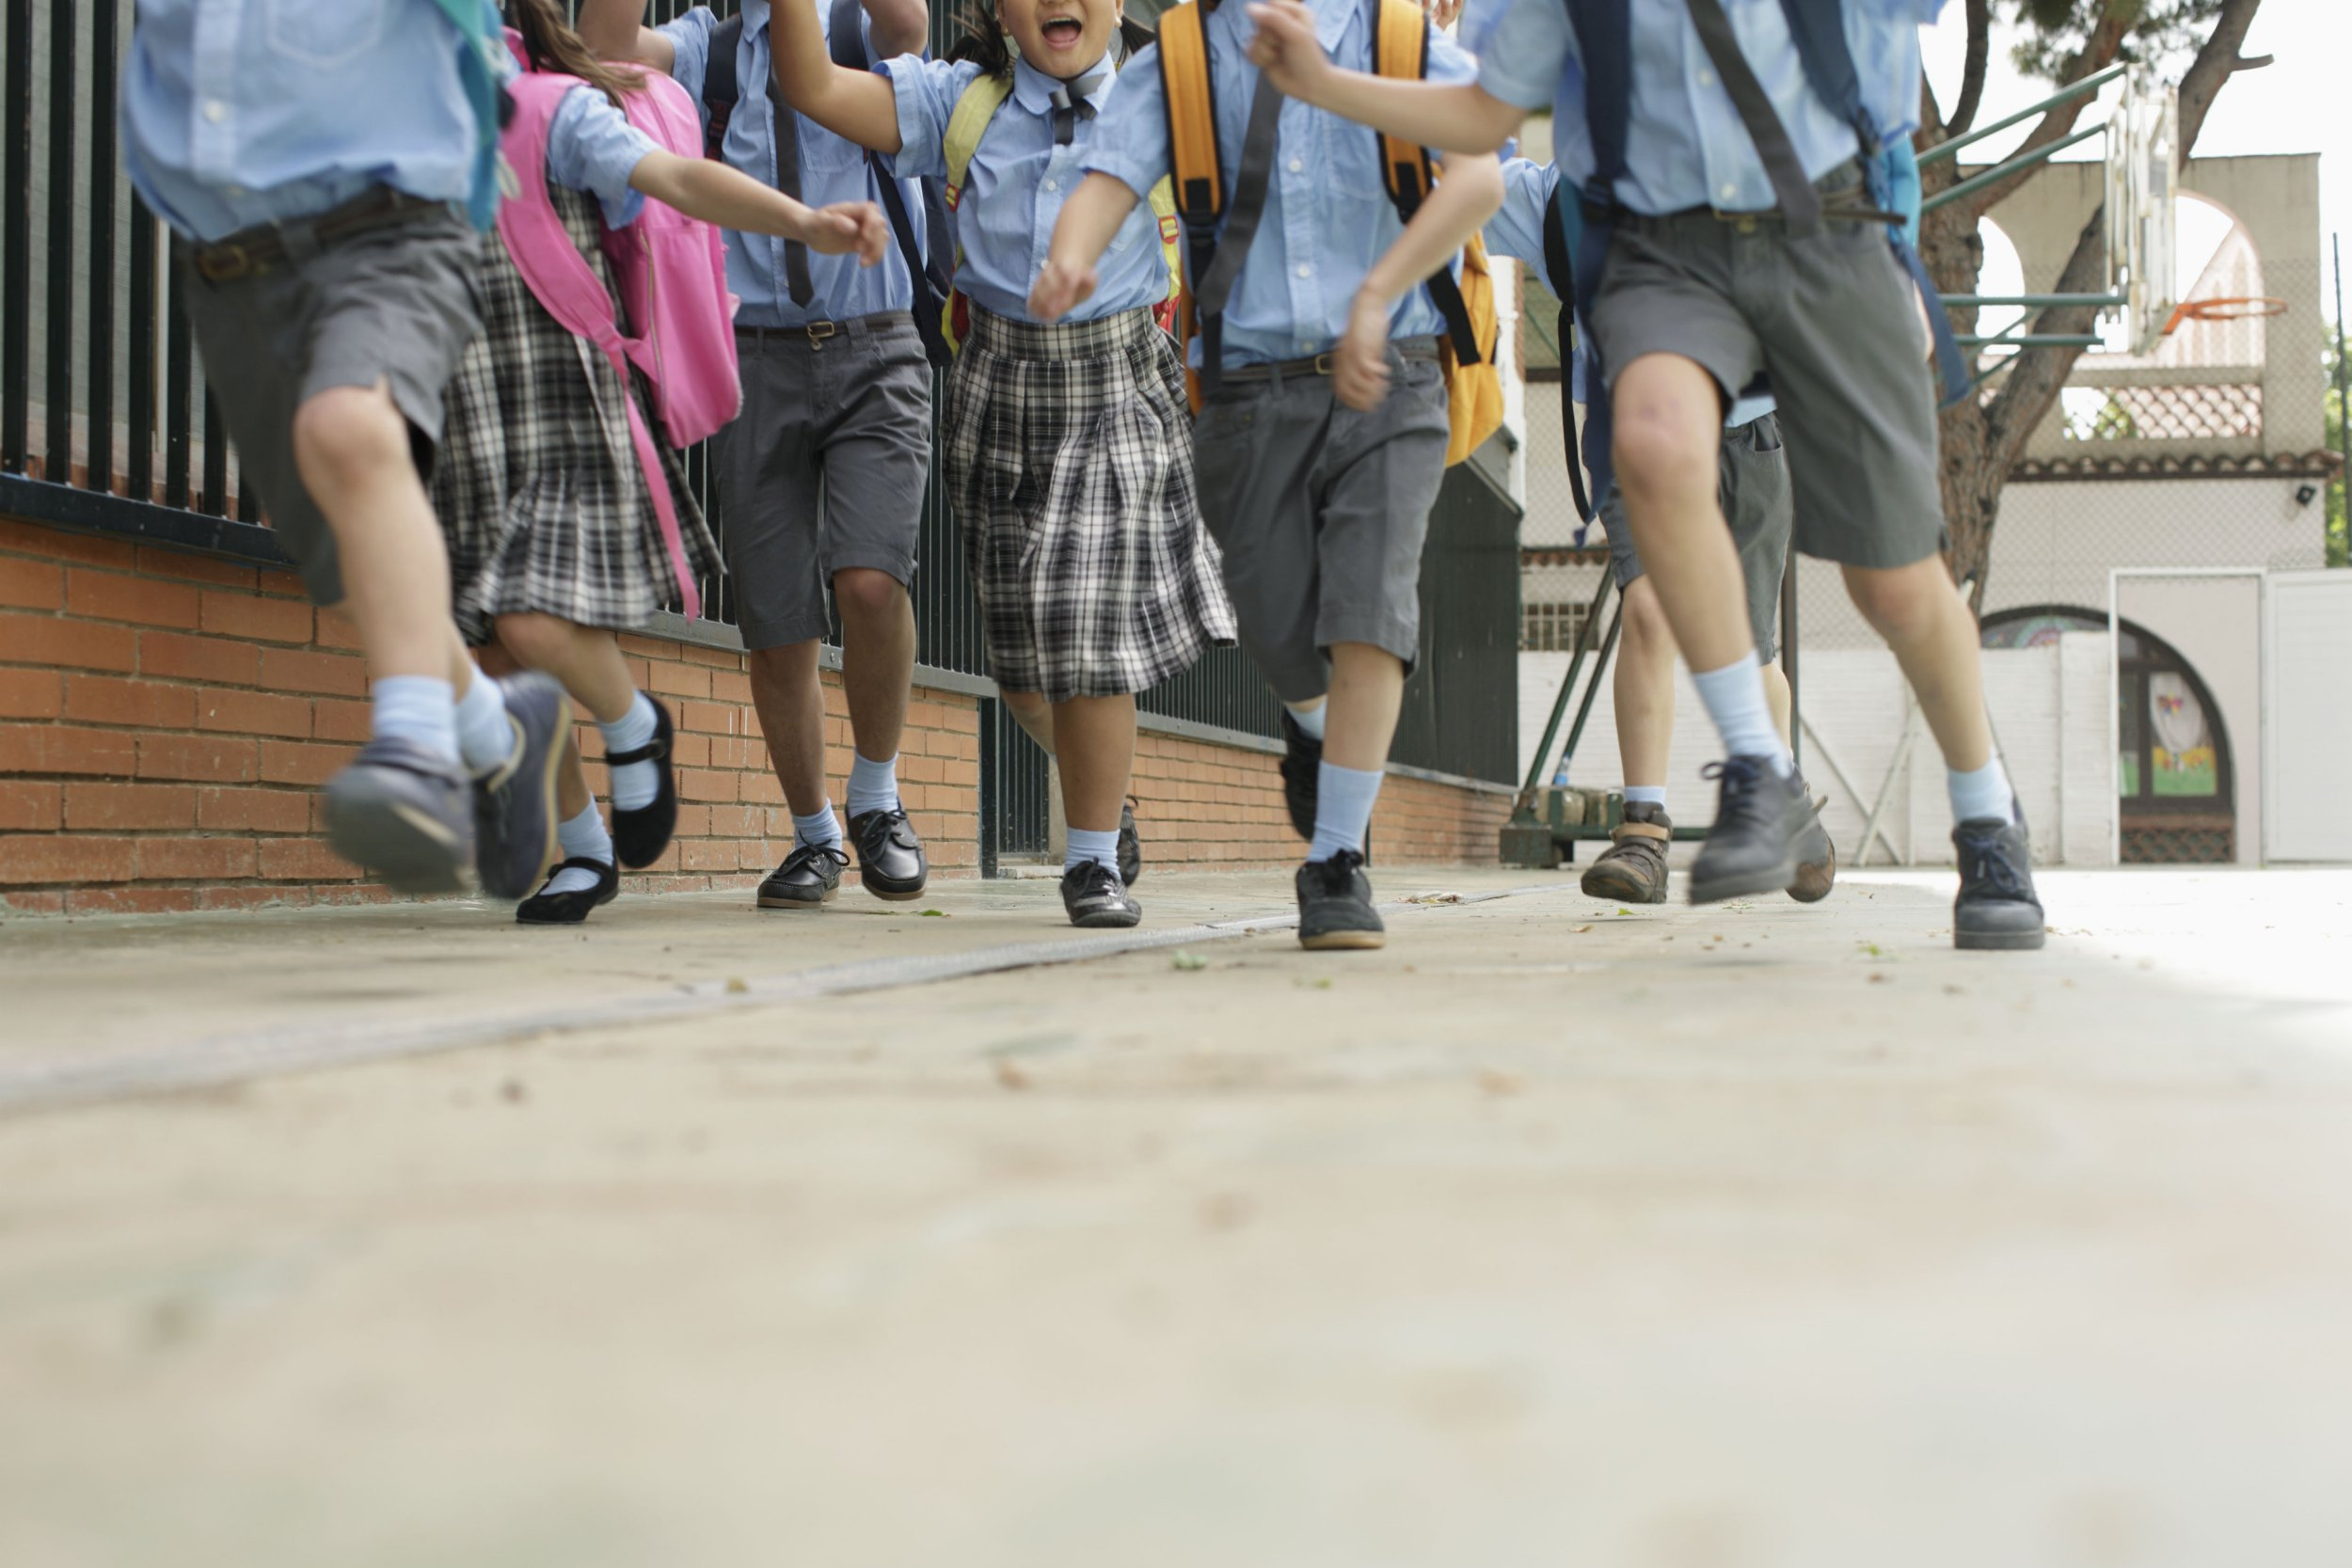 School breaks are not long enough and could be 'harming' children